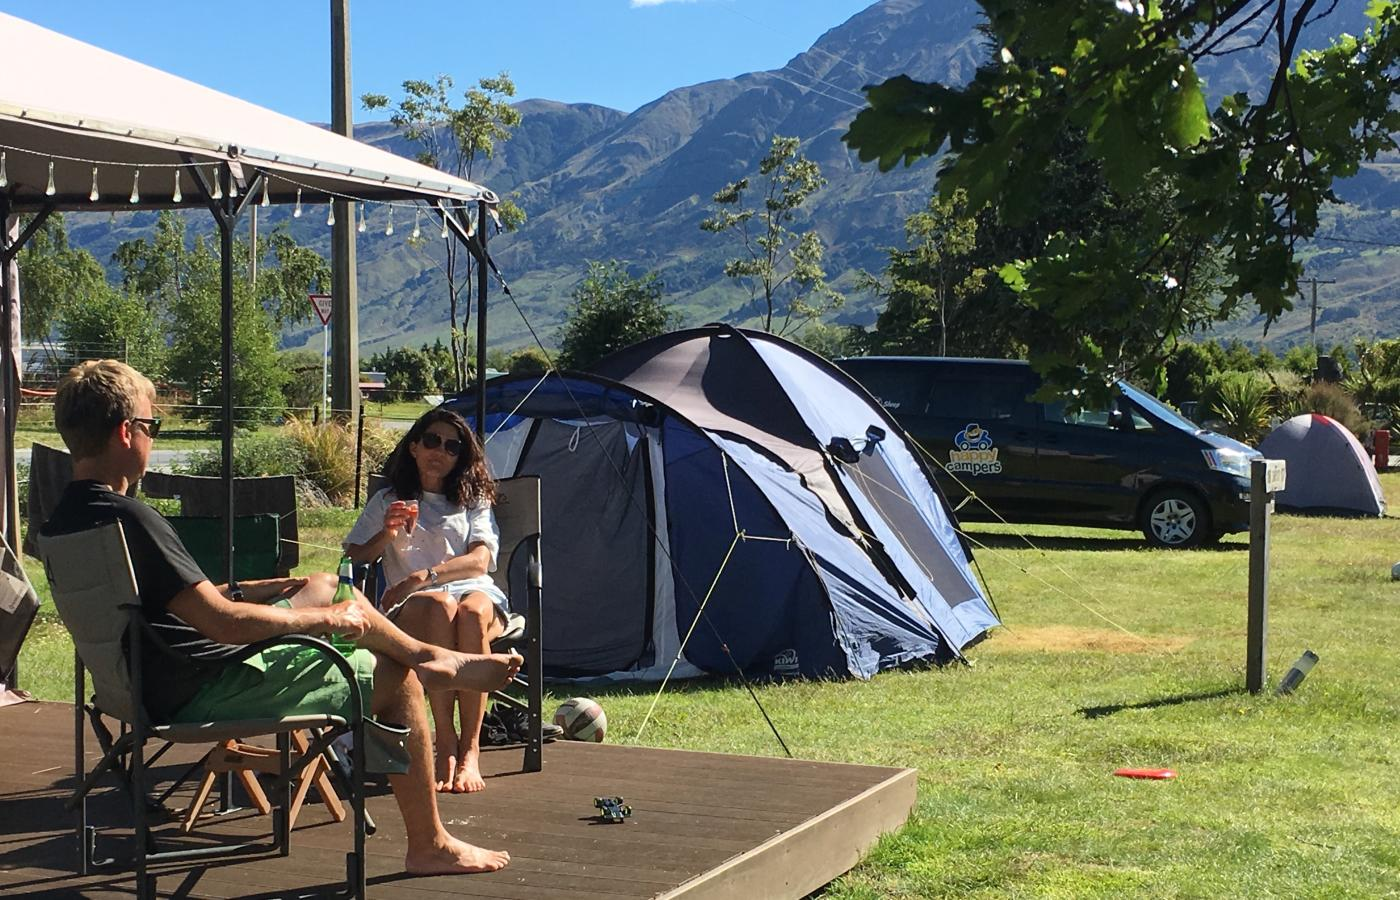 Glamping Mrs Woolly's Campground tent comfort lodging romantic beauty hotel motel B&B